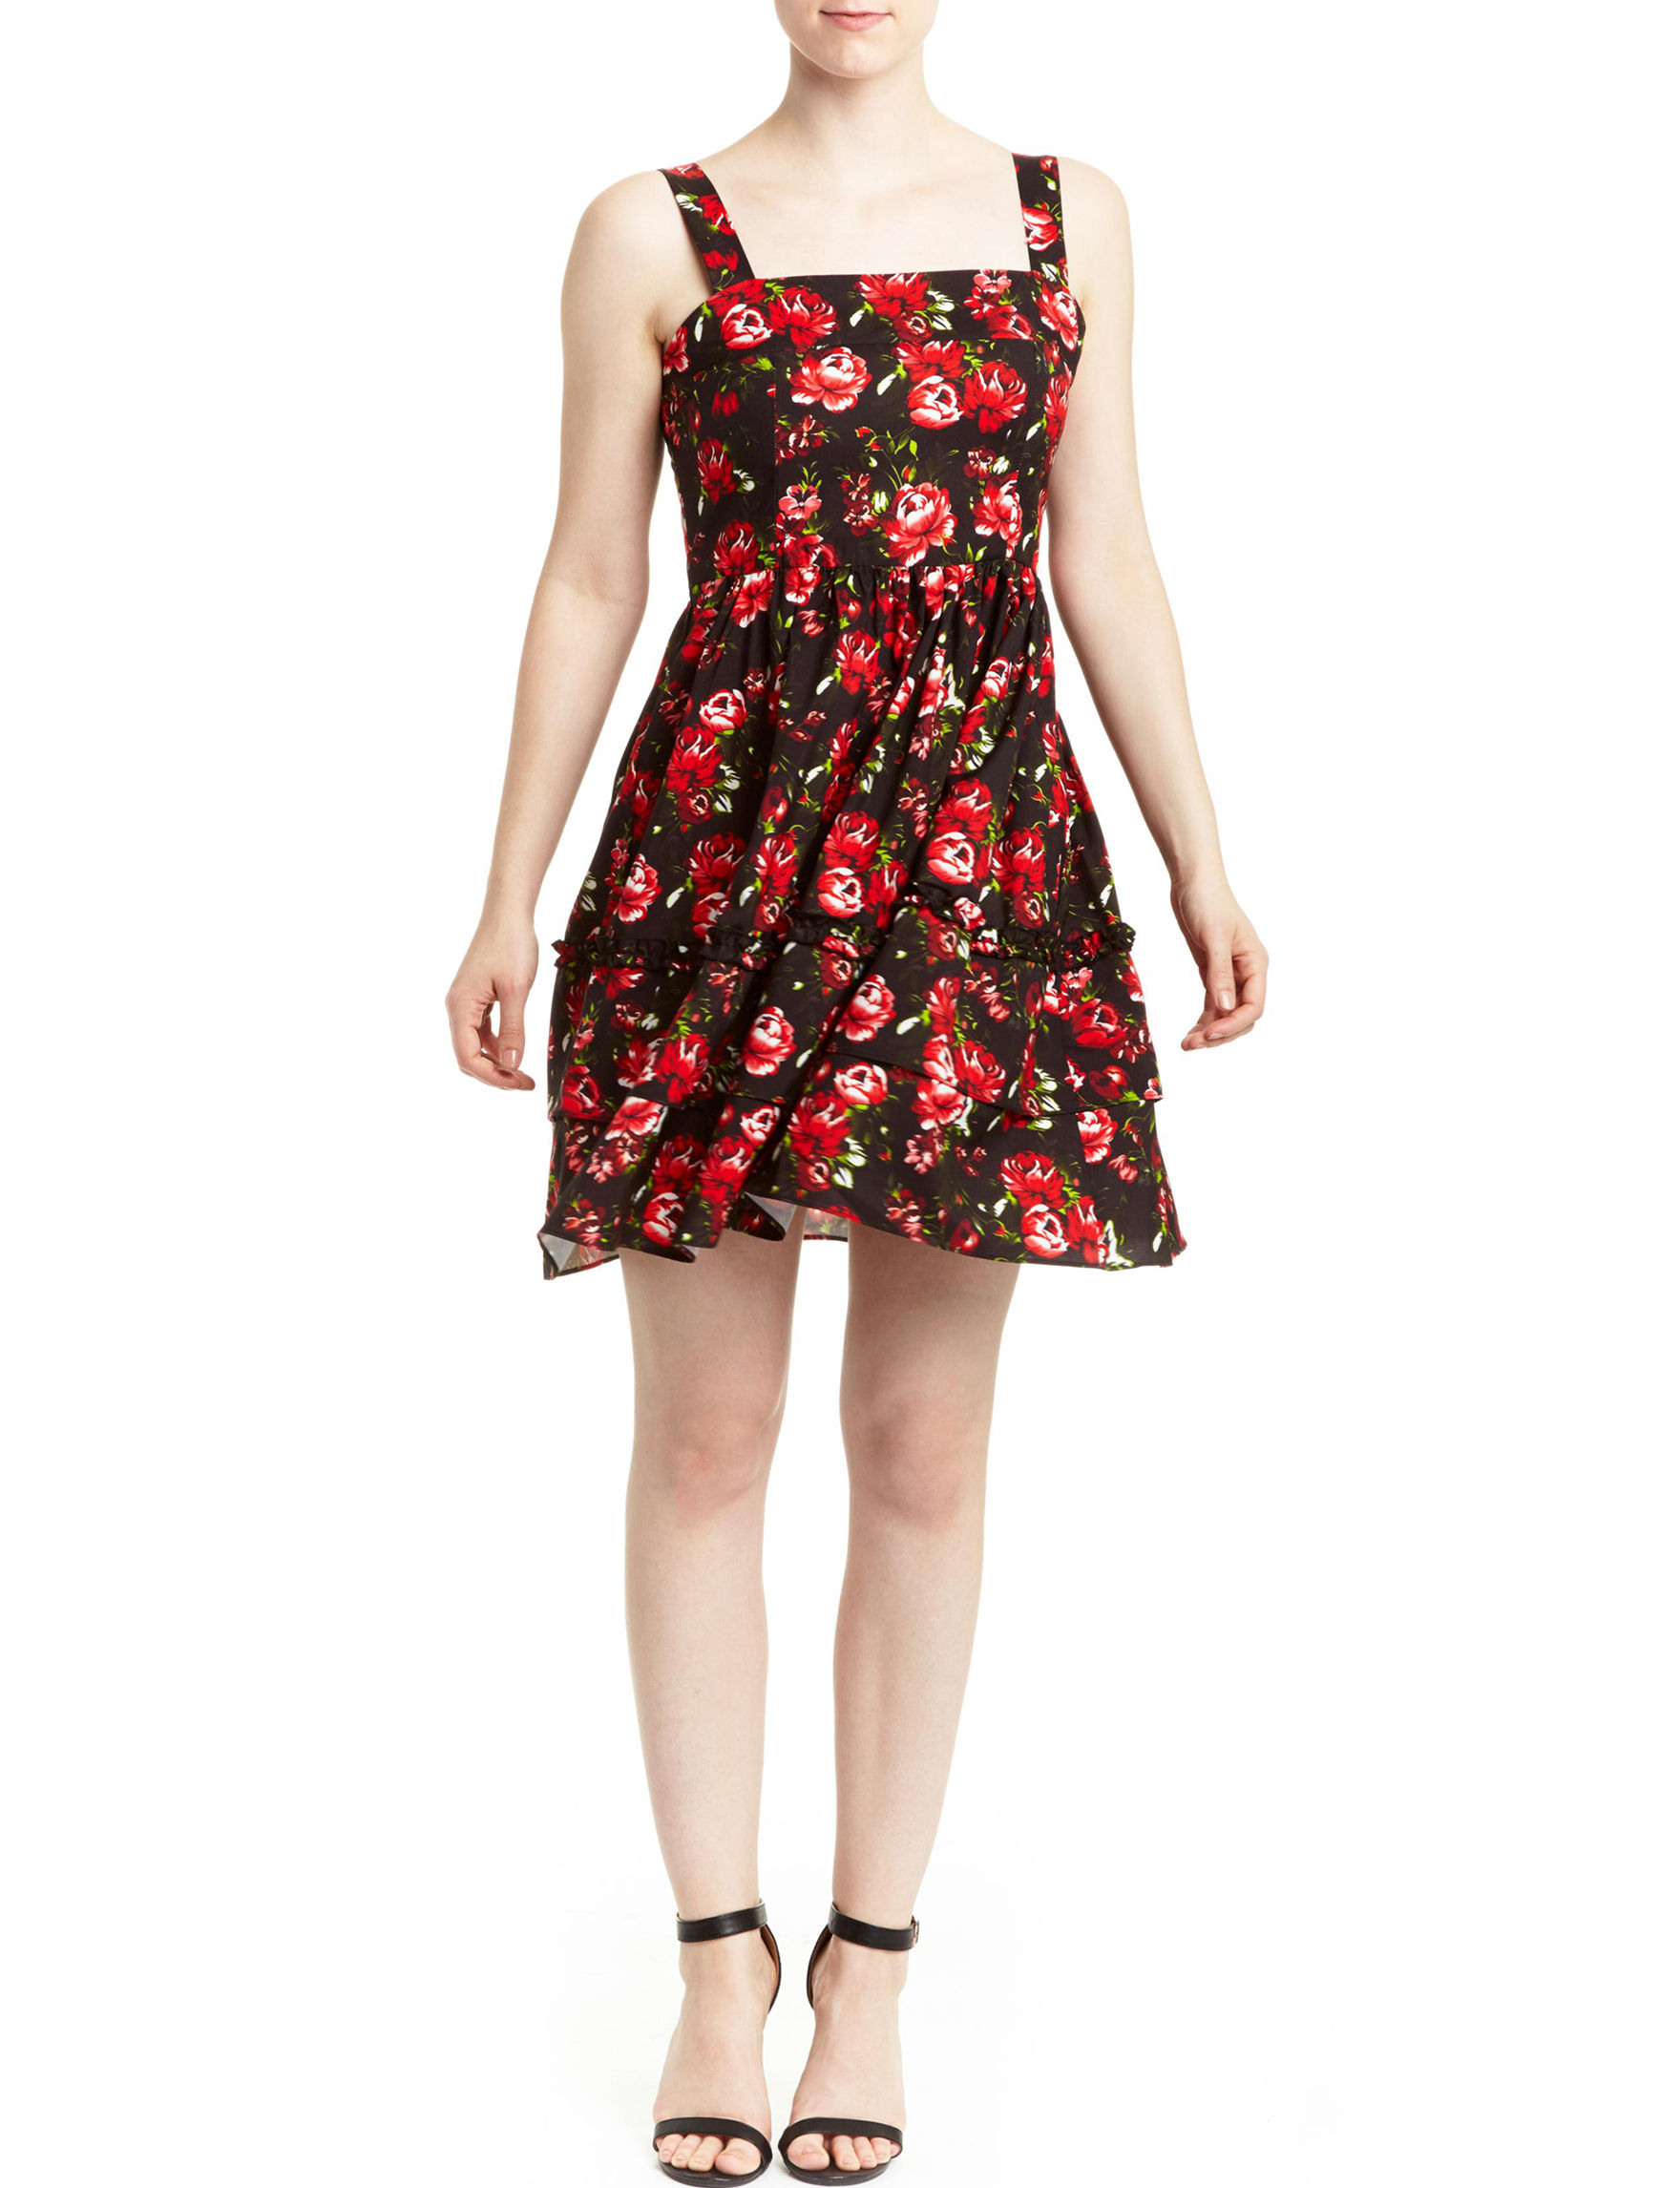 Romeo + Juliet Couture Black Floral Everyday & Casual Fit & Flare Dresses